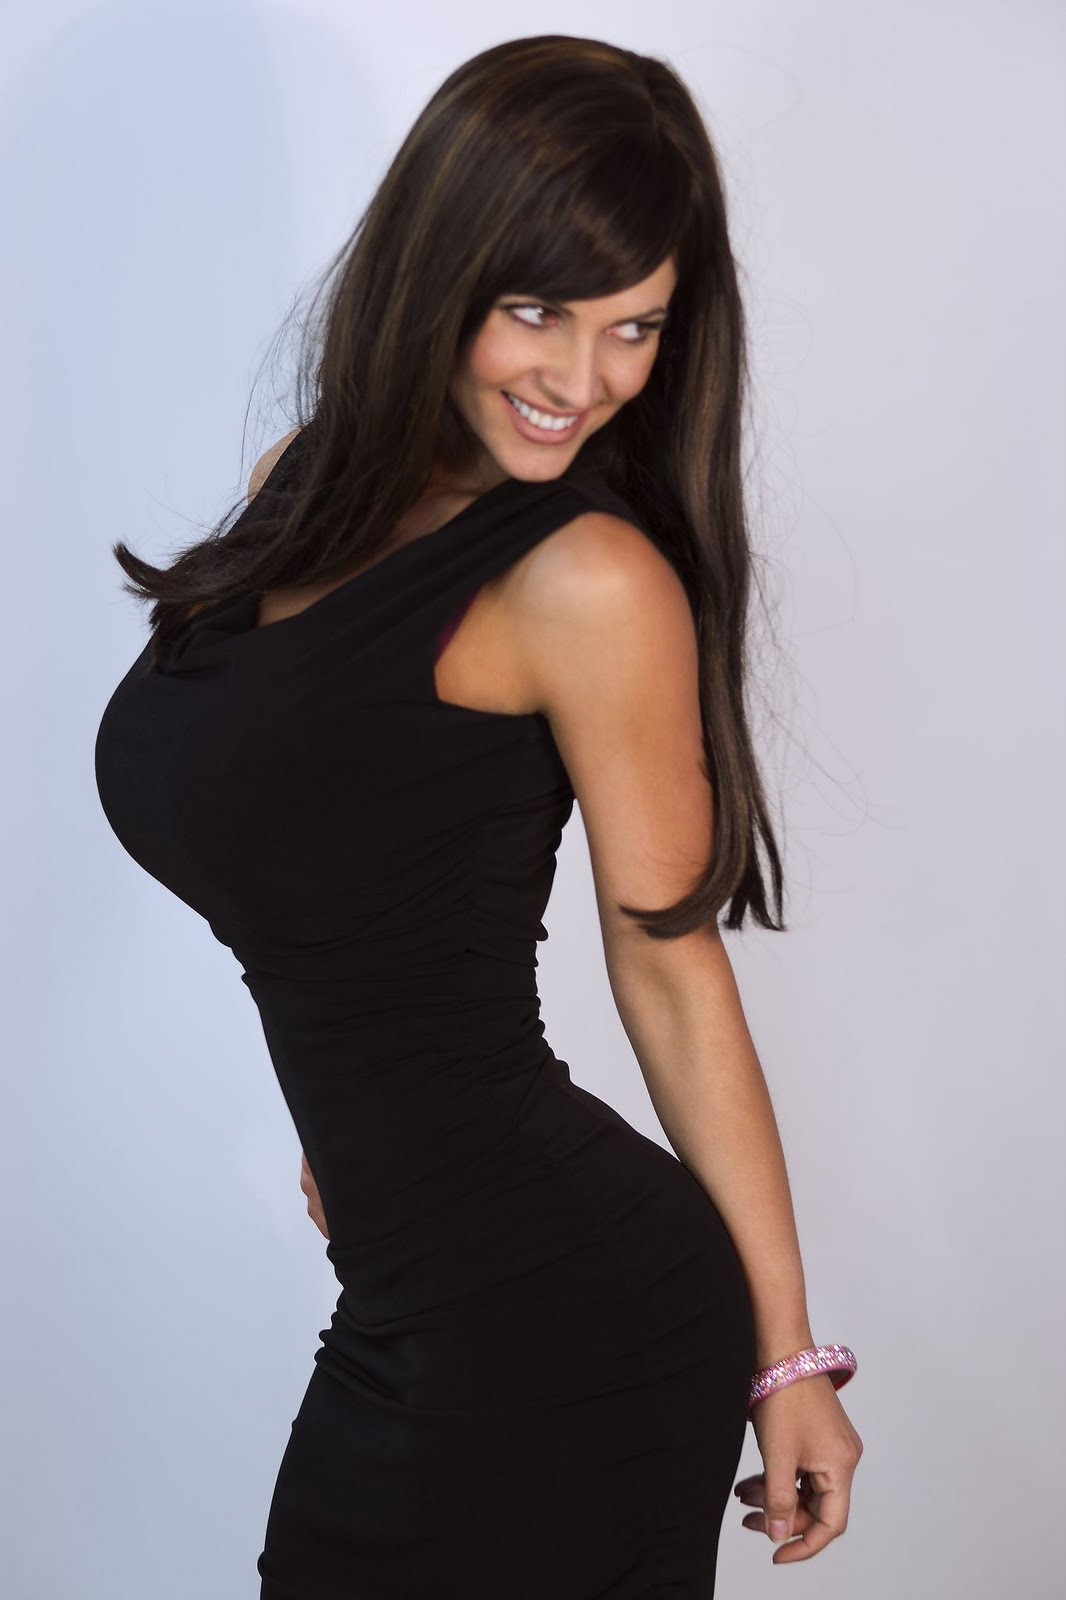 denise milani in a dress - photo #3